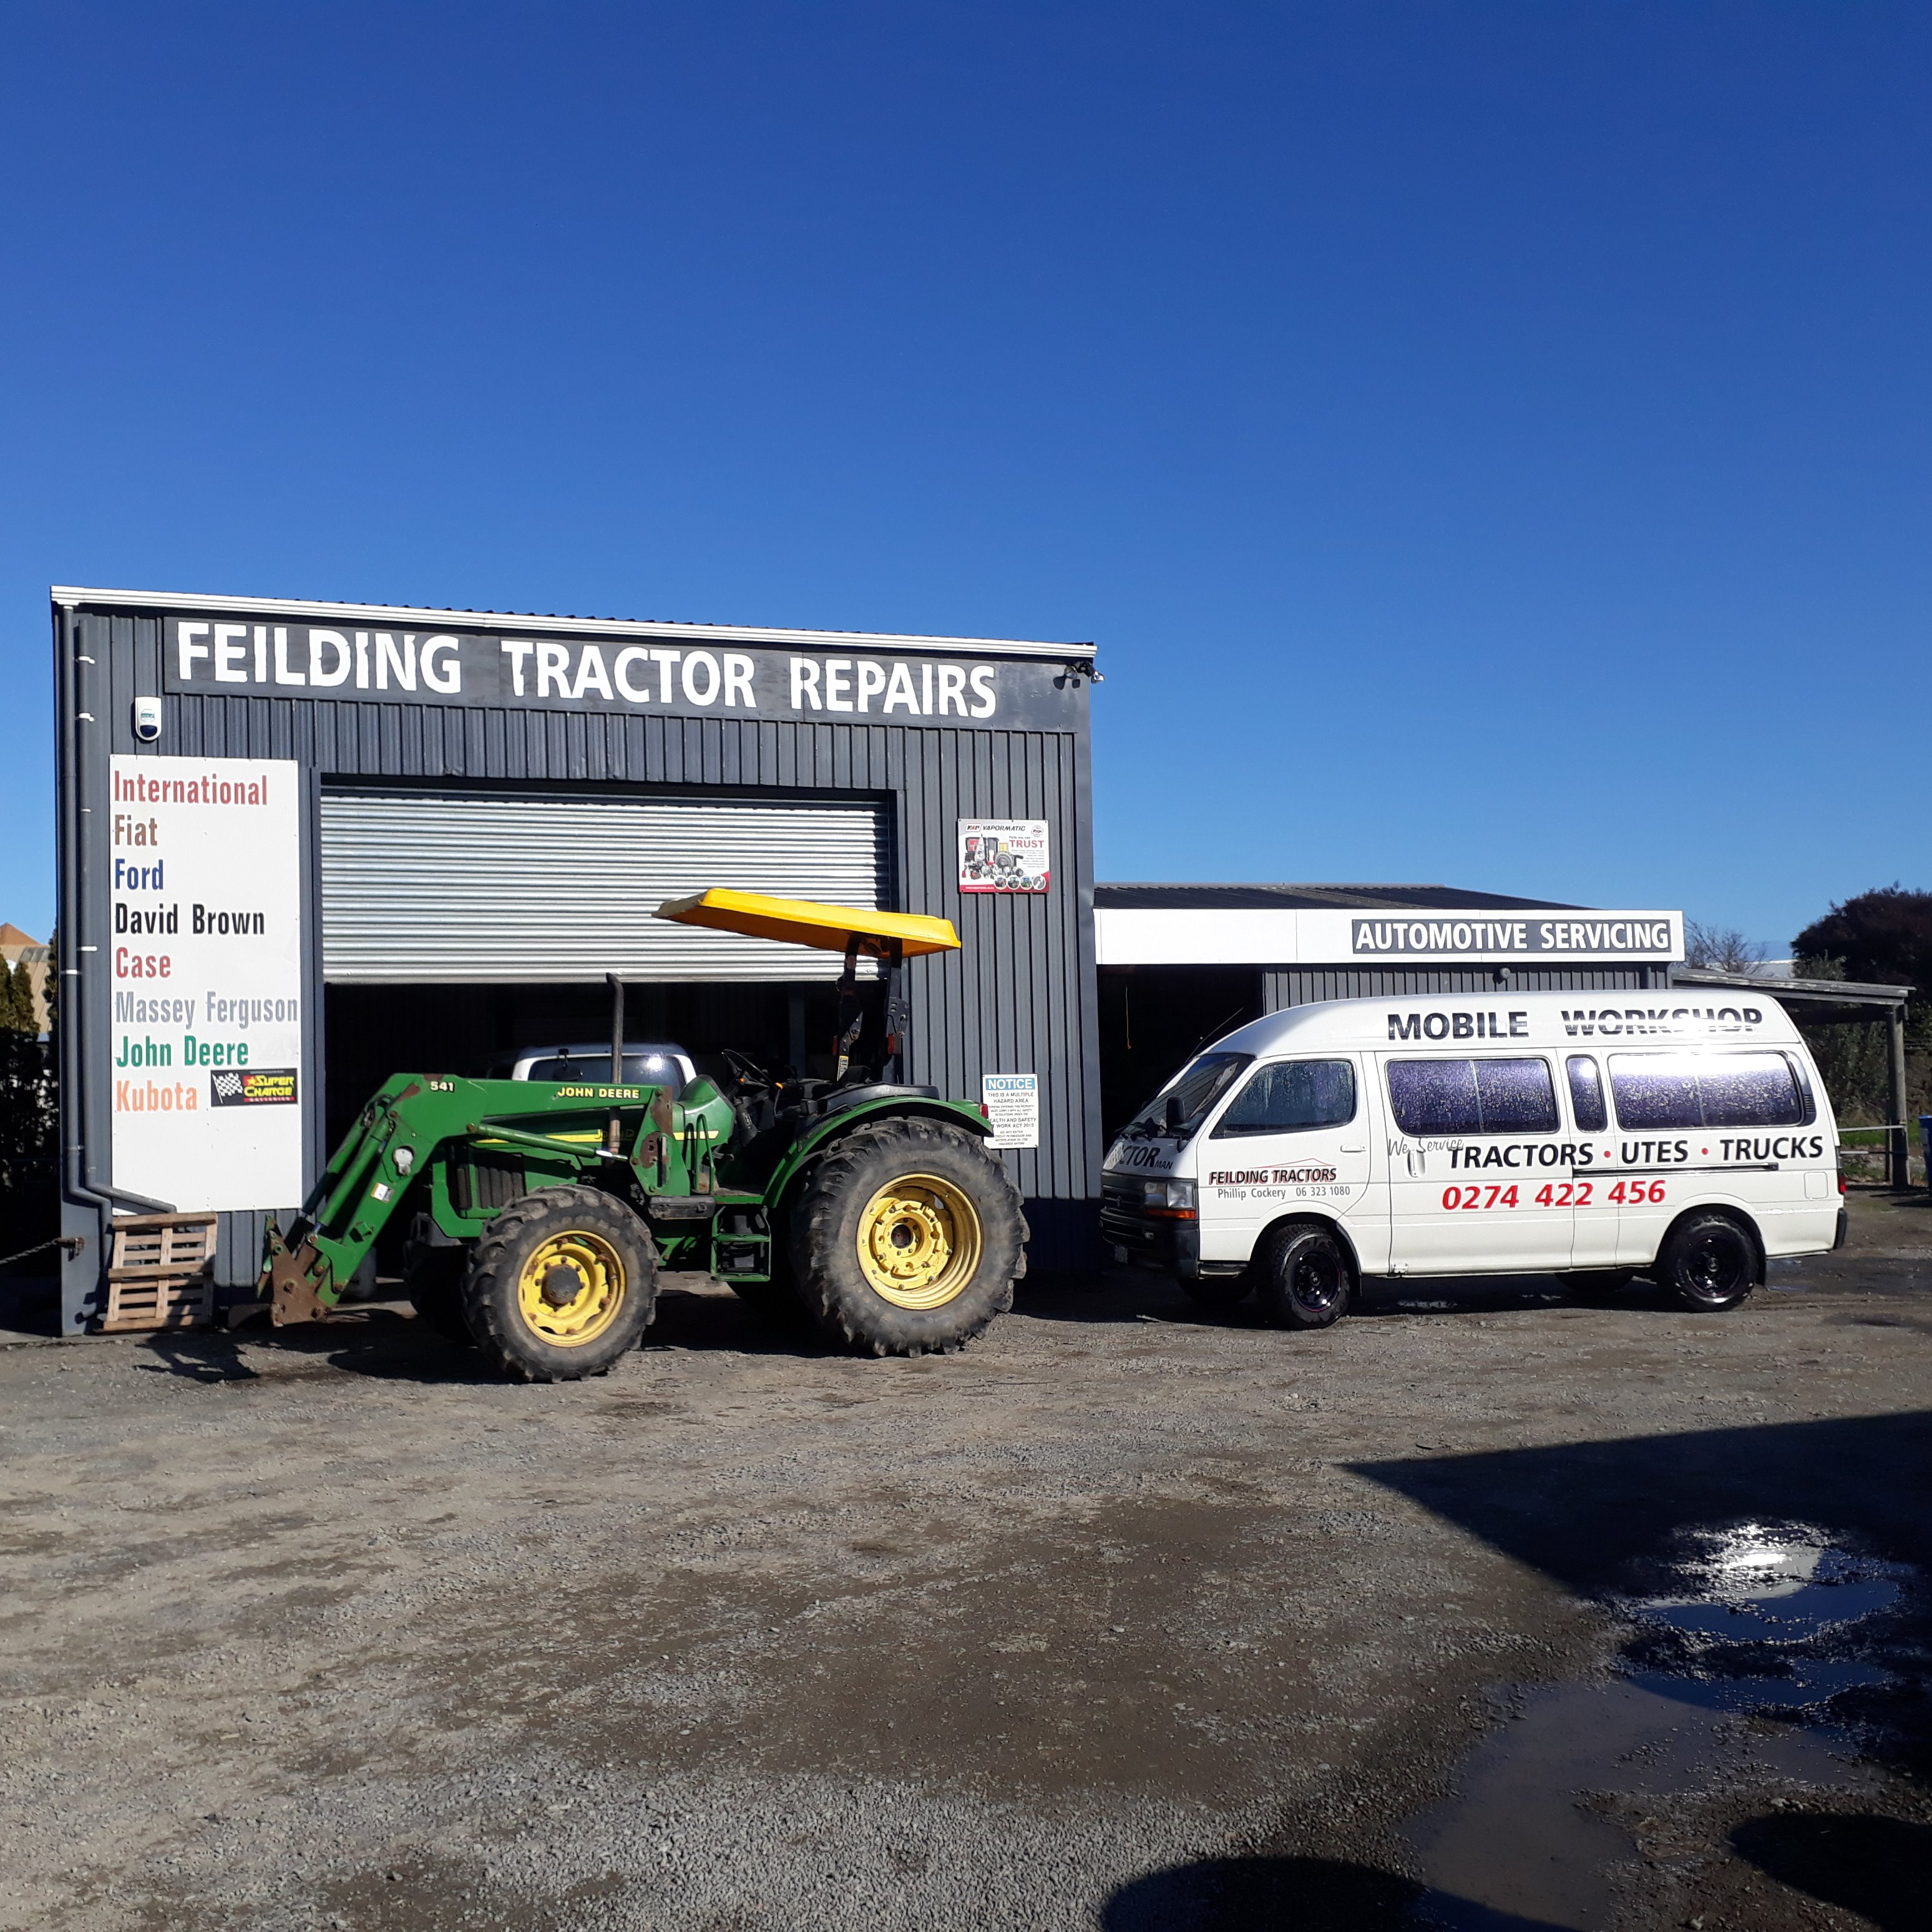 Feilding Tractors (2018) Limited